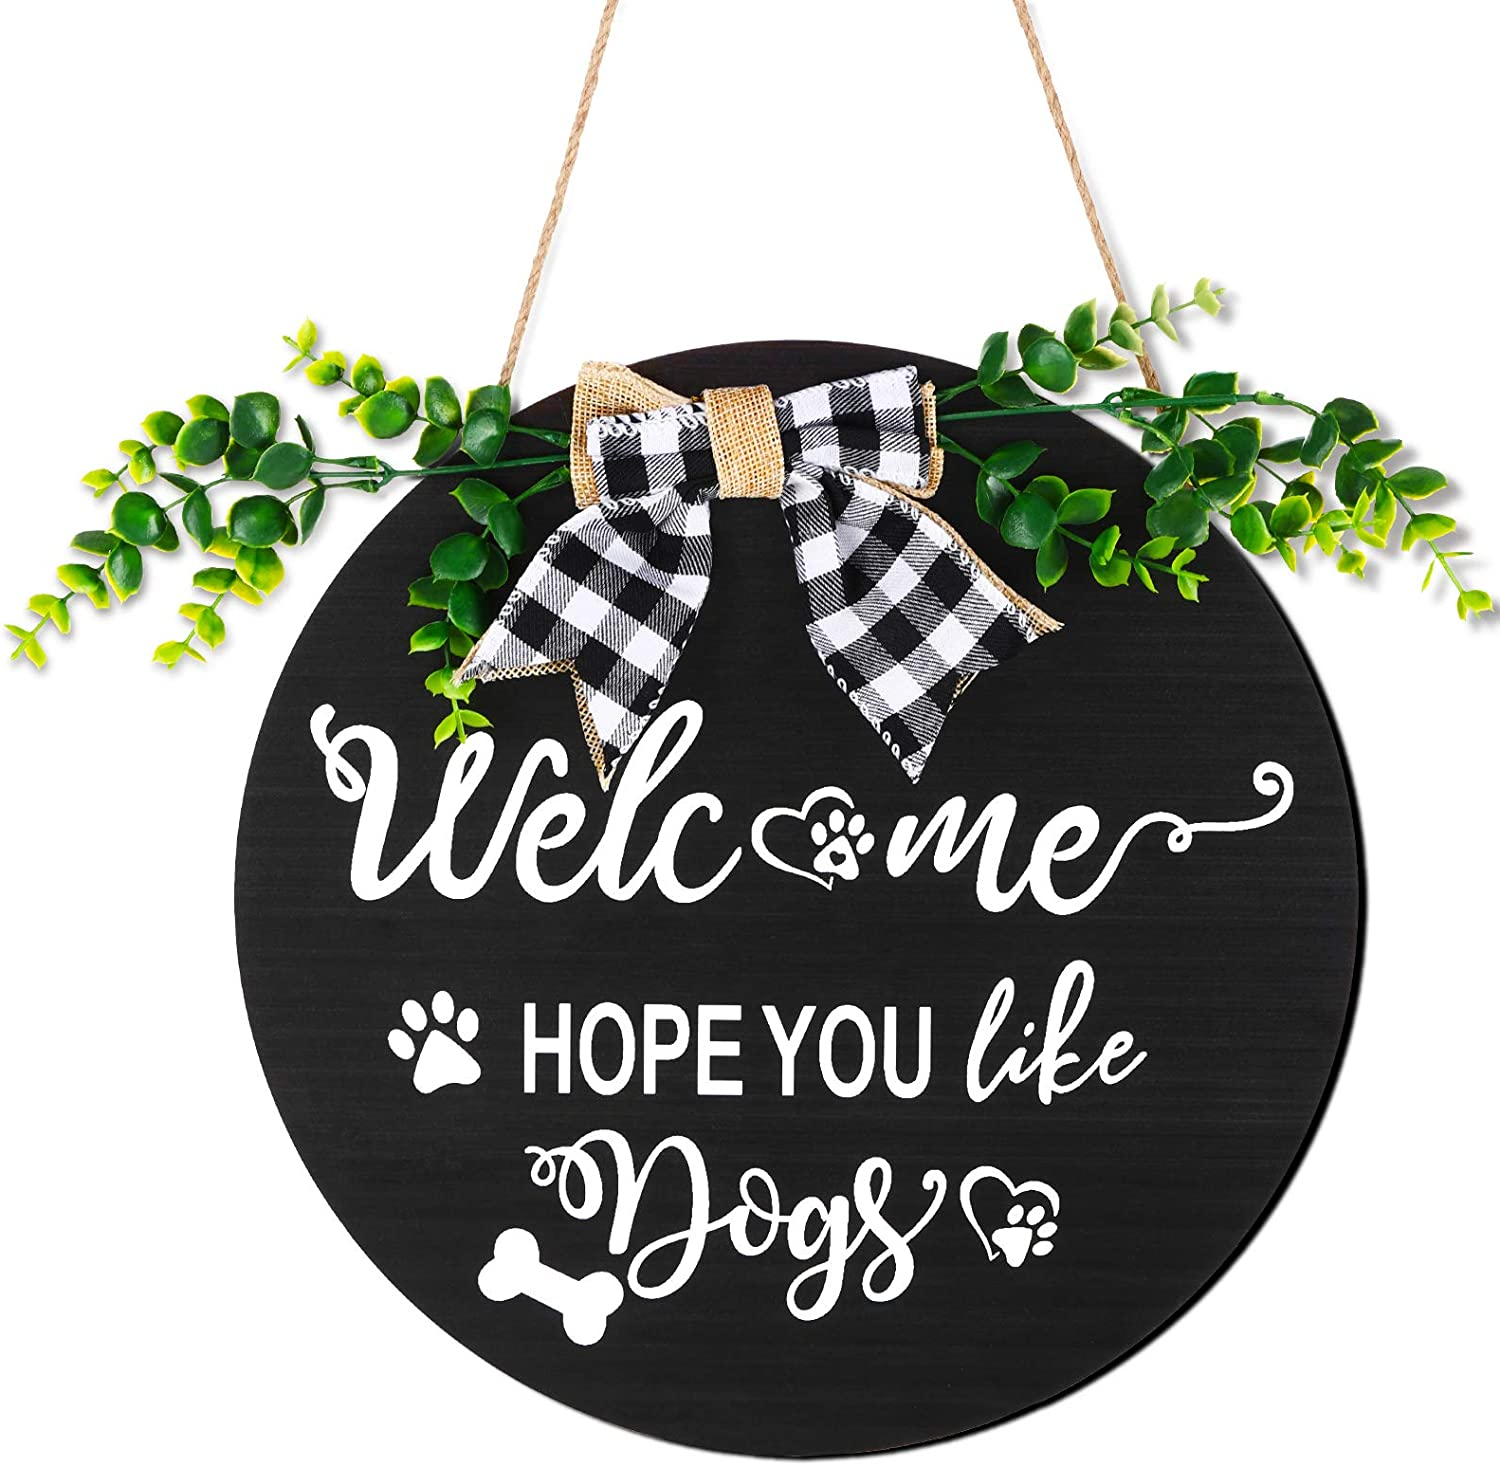 Jetec Dog Welcome Sign Hope You Like Dogs Wooden Sign with Greenery Paw Prints Bow Rustic Farmhouse Wall Hanging Wreath Sign for Front Door Home Outdoor Decorations (Black)